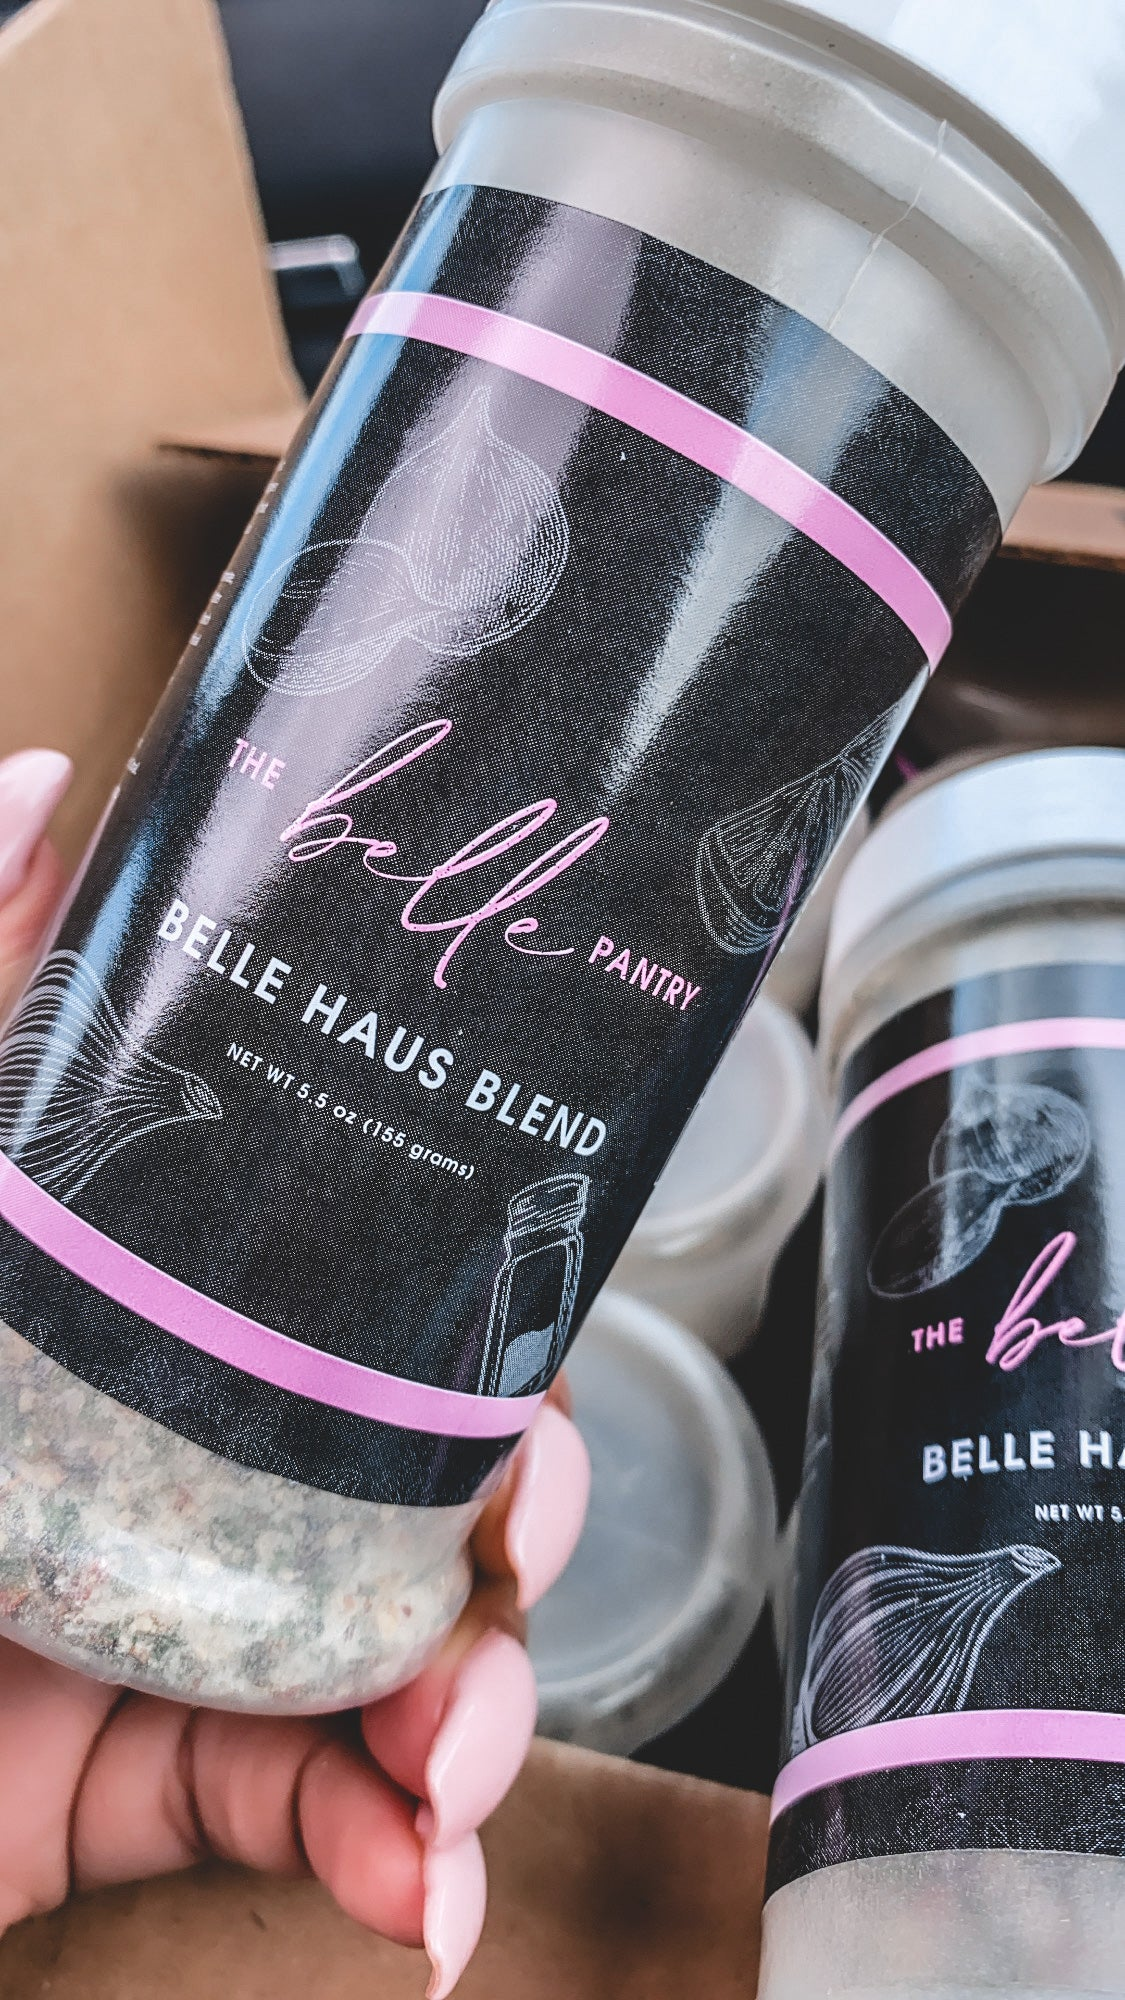 Image of The Belle Haus Blend